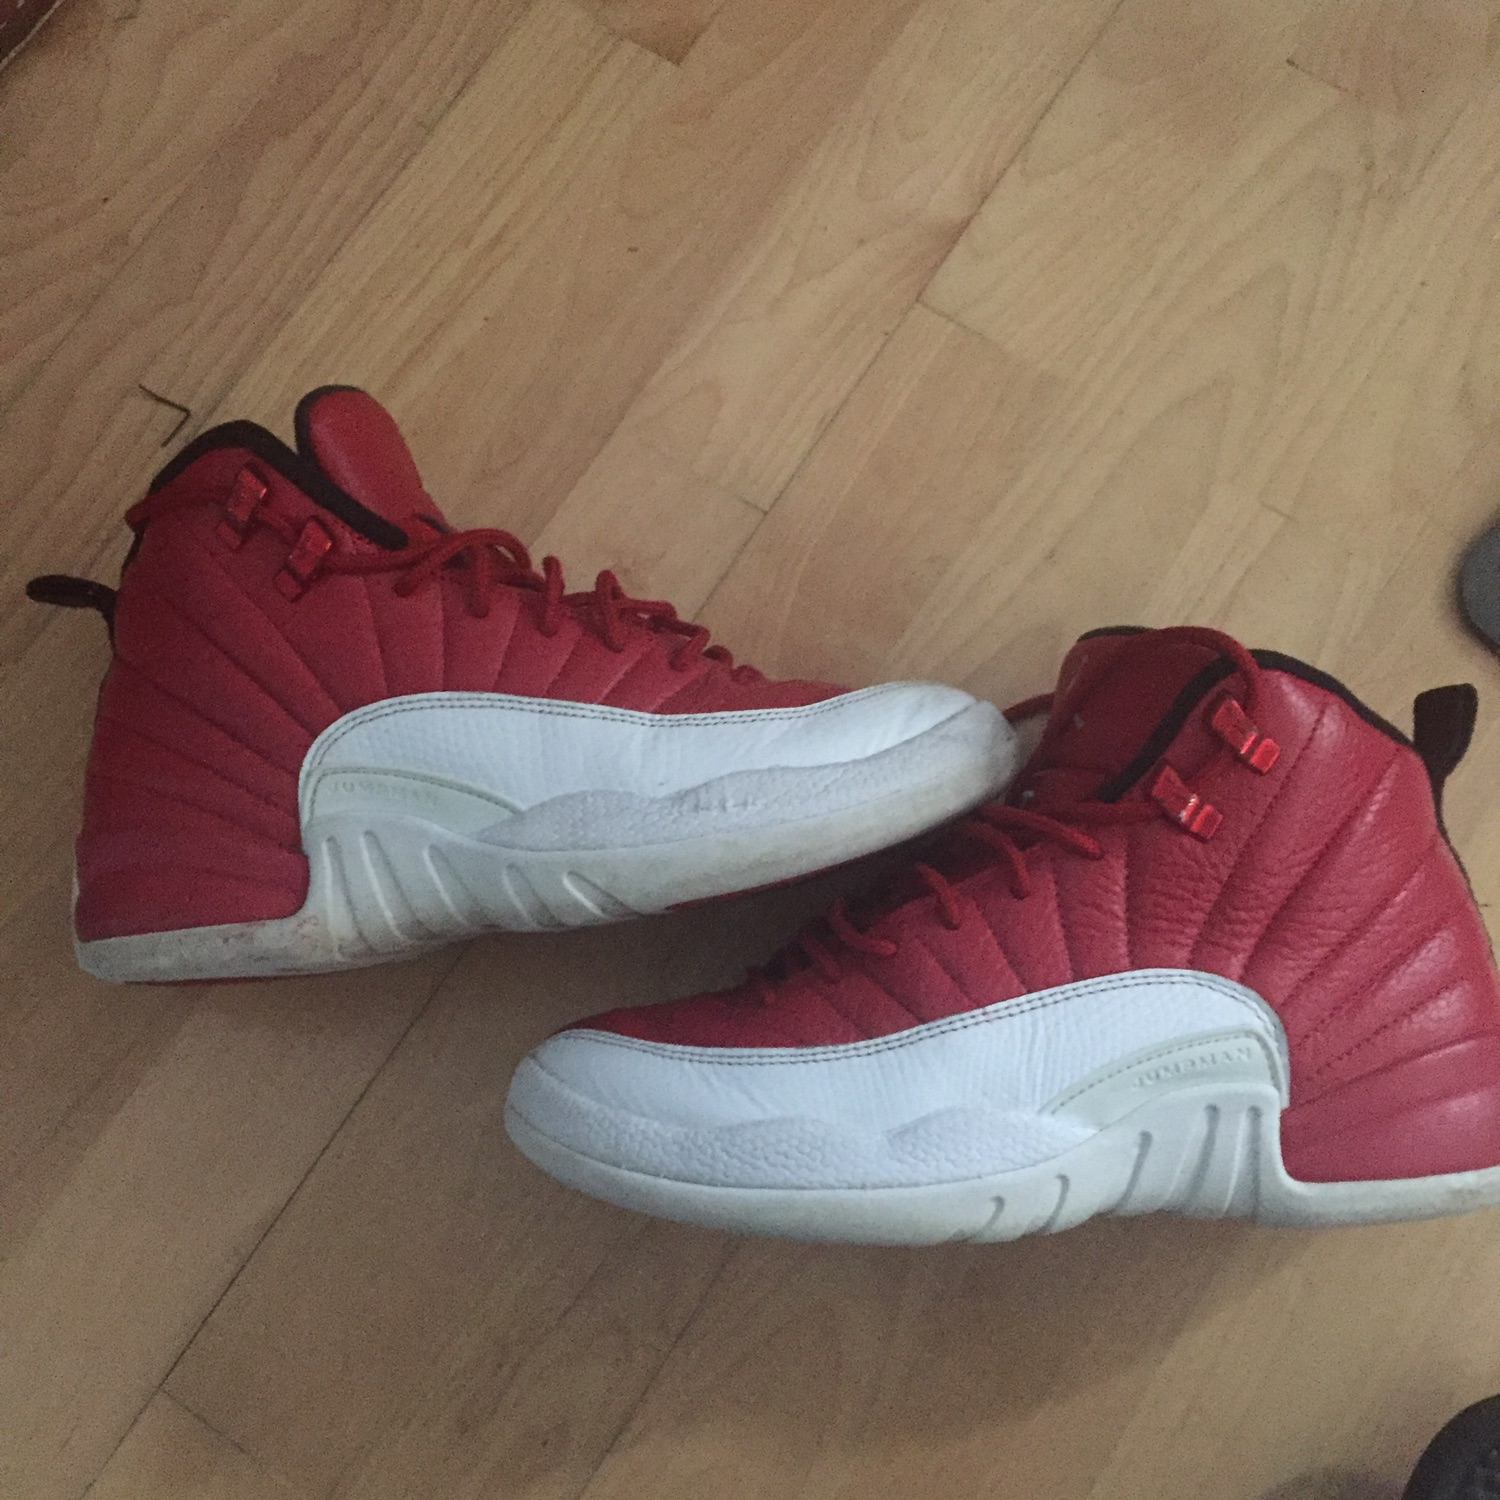 hot sale online a683a 29752 Jordan Retro 12 Gym Red Offer Your Price Or Trade